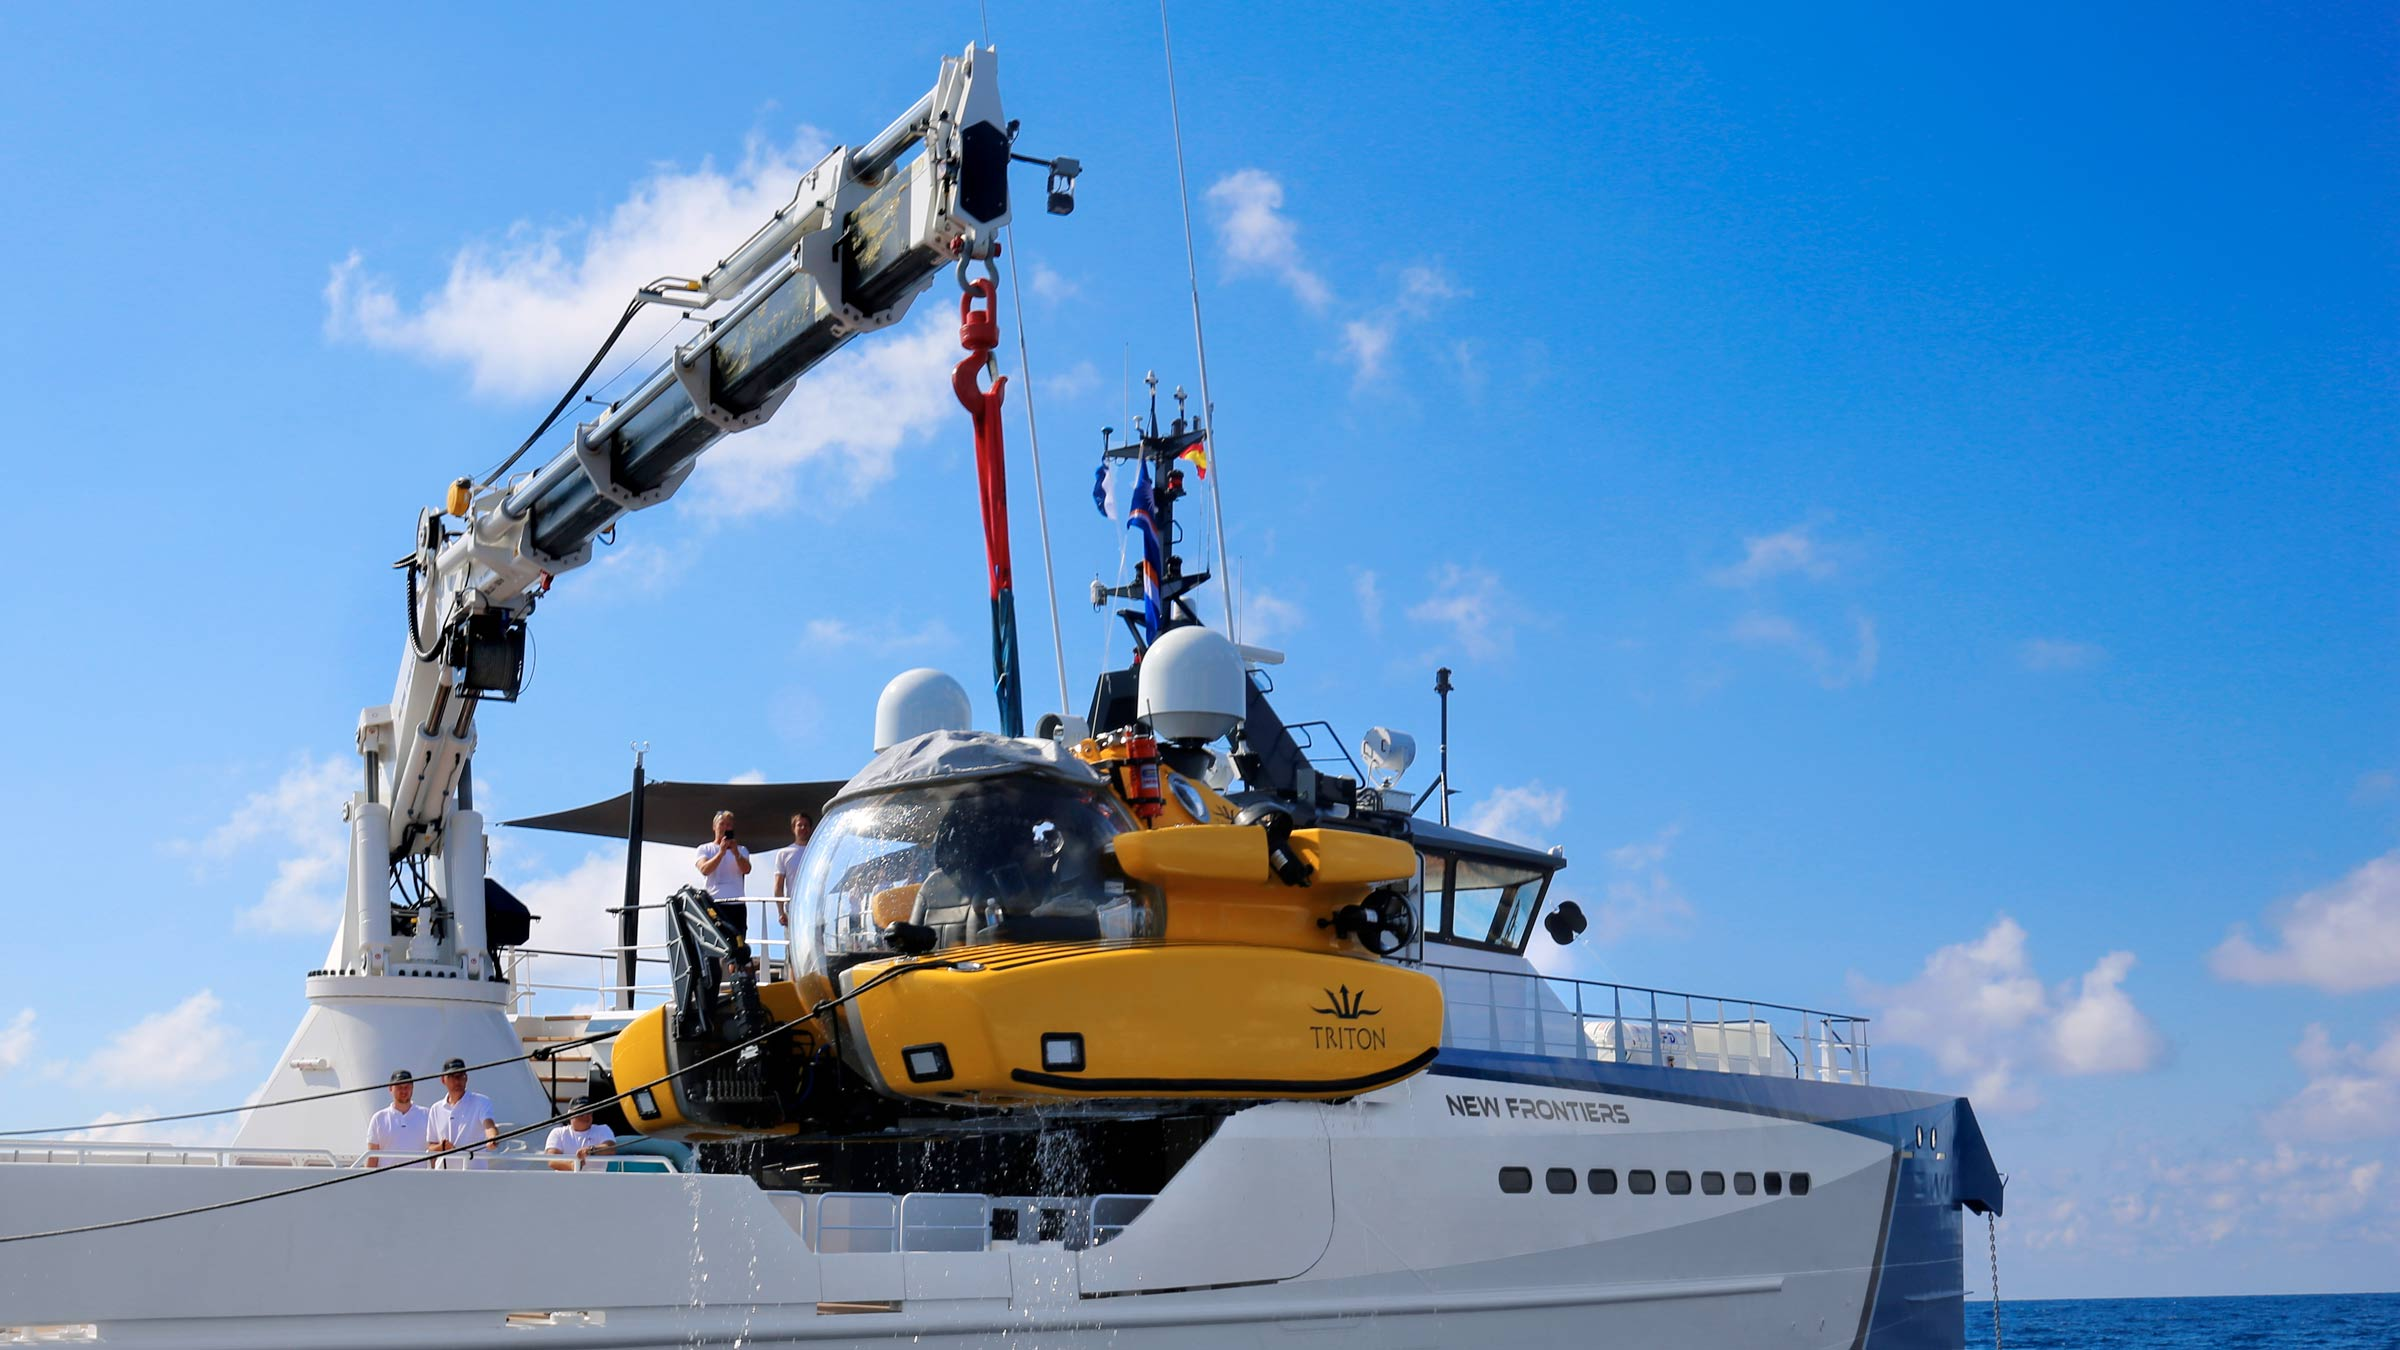 Triton submersible being launched by crane